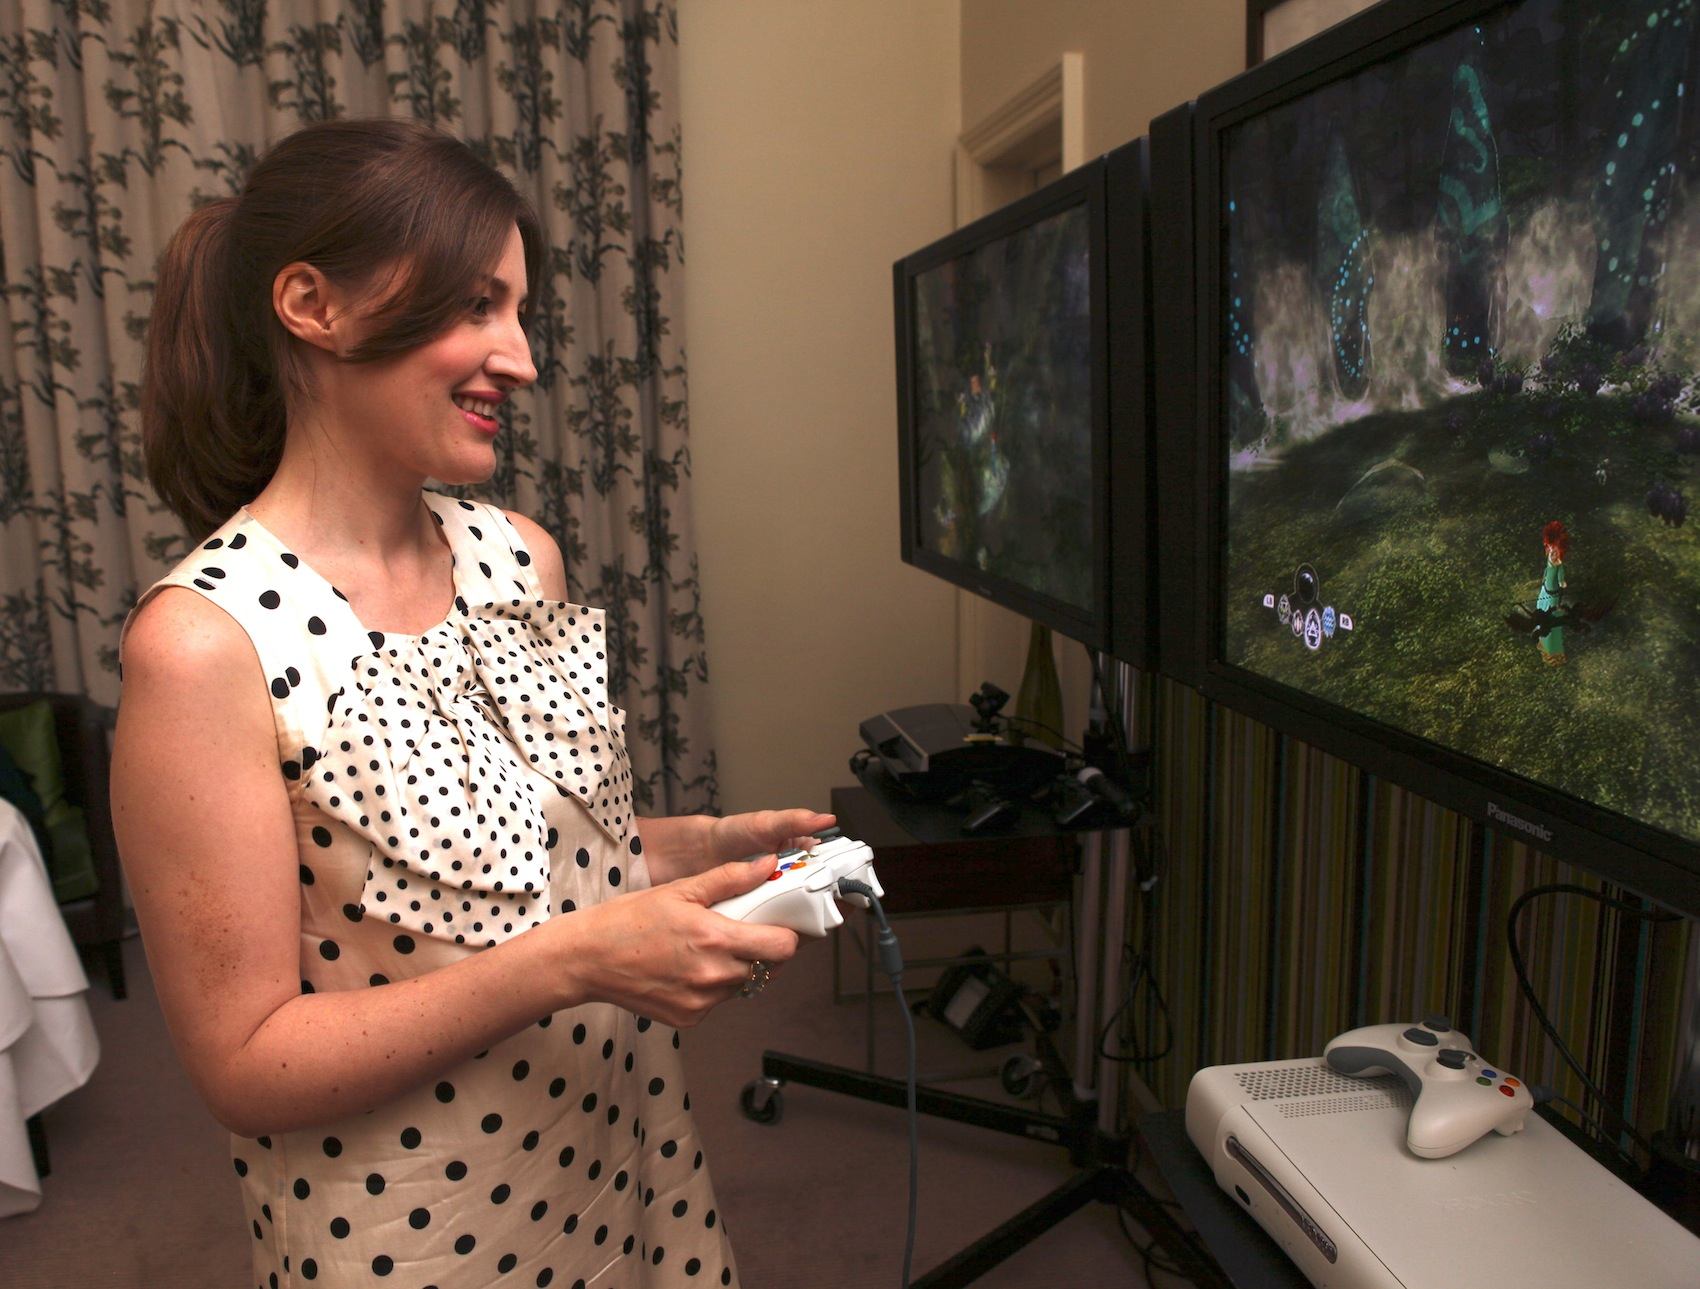 Actress Kelly Macdonald On Voicing Merida In 'Brave' And Its Video Game